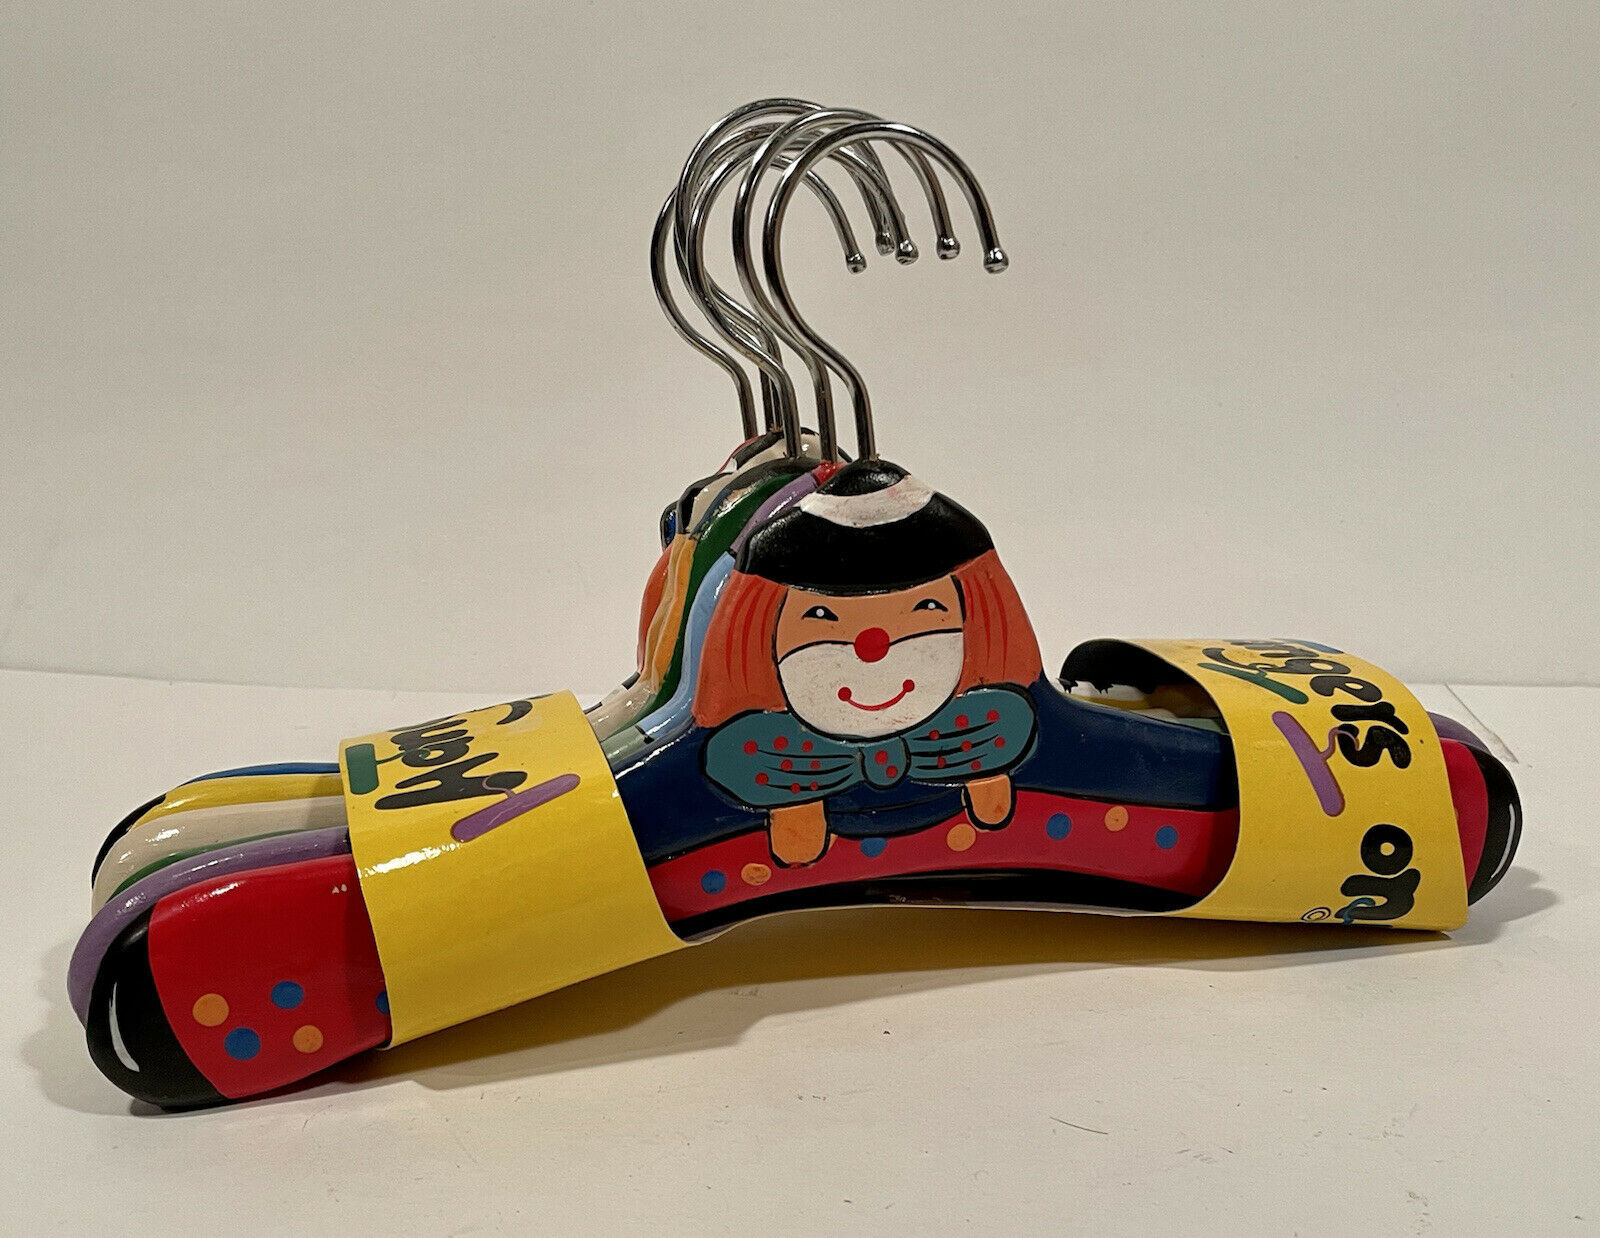 (6) Vintage Hand Painted Clowns Kids' Clothes Hangers - NEW IN PACKAGE